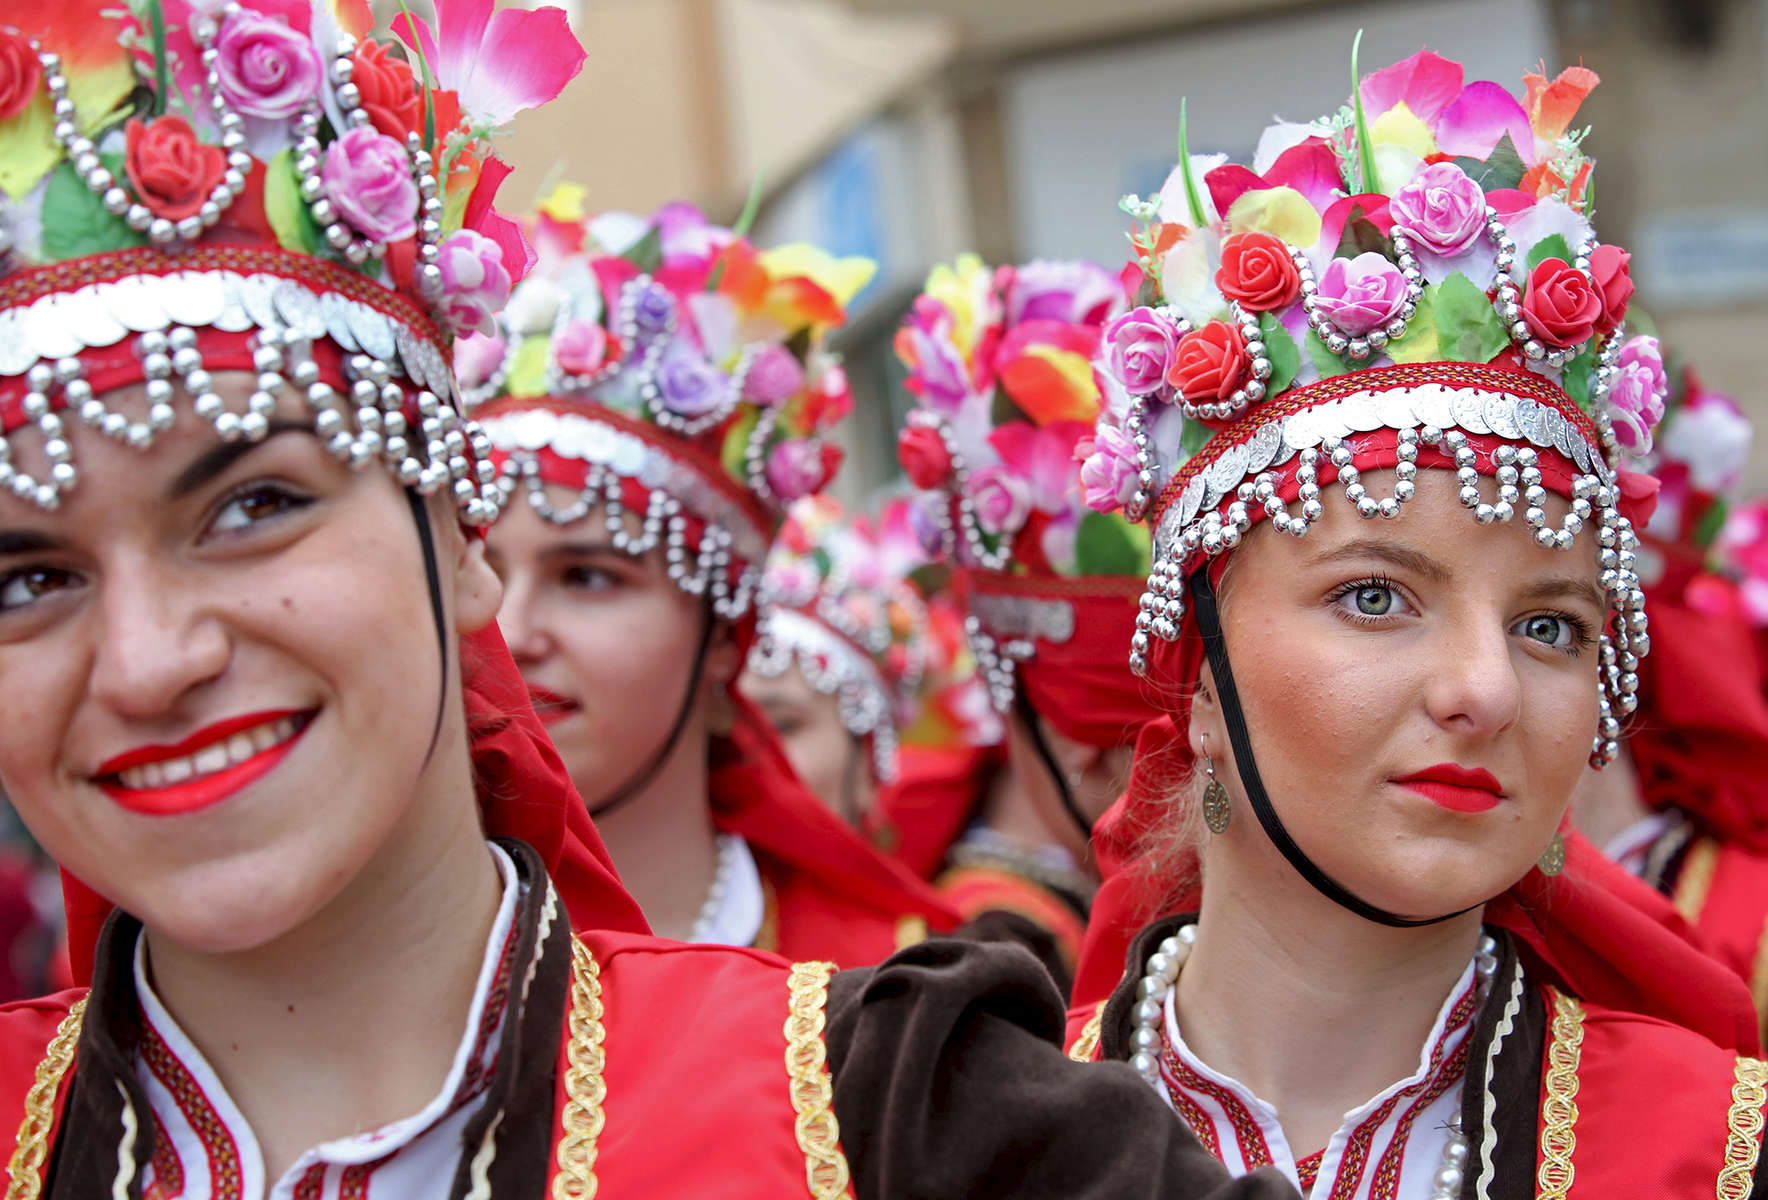 Members of the folk ensemble Kocani, from Kocani, Macedonia, prepare to perform on stage during an International Folklore Festival on June 02, 2018, which is a part of the Rose Festival in Kazanlak, Bulgaria. The festival, situated in the Rose Valley of Bulgaria, celebrated 115 years in 2018.  Photo by: Yana Paskova for National Geographic Traveler